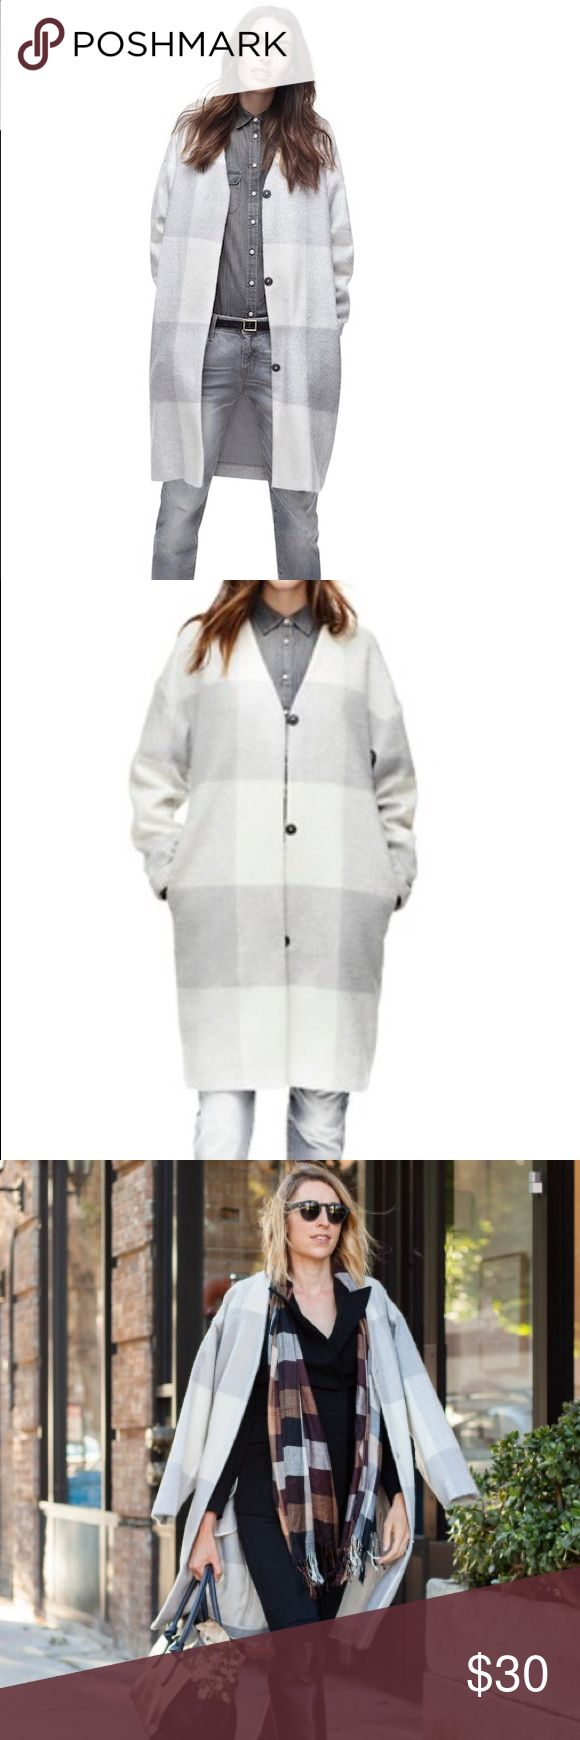 Adam Lippes for Target Mohair Coat Oversized gray and white mohair coat. It's a very Madewell look at a fraction of the price. There's no lining so it's a perfect for fall weather. I'm being lazy with my posts tonight, but I will post my actual coat soon. Adam Lippes For Target Jackets & Coats